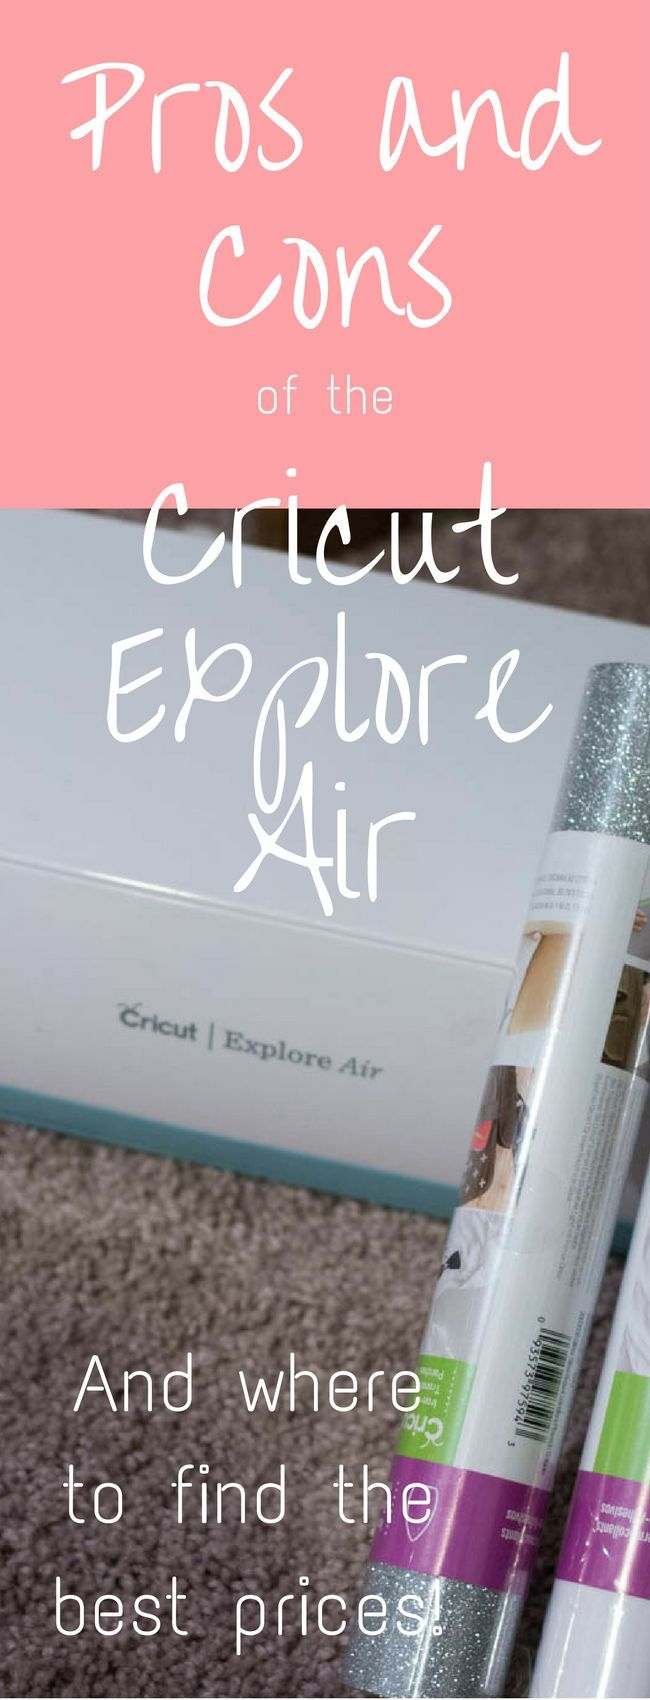 Pros and Cons of the Cricut Explore Air: A great guide if you are considering buying a Cricut!